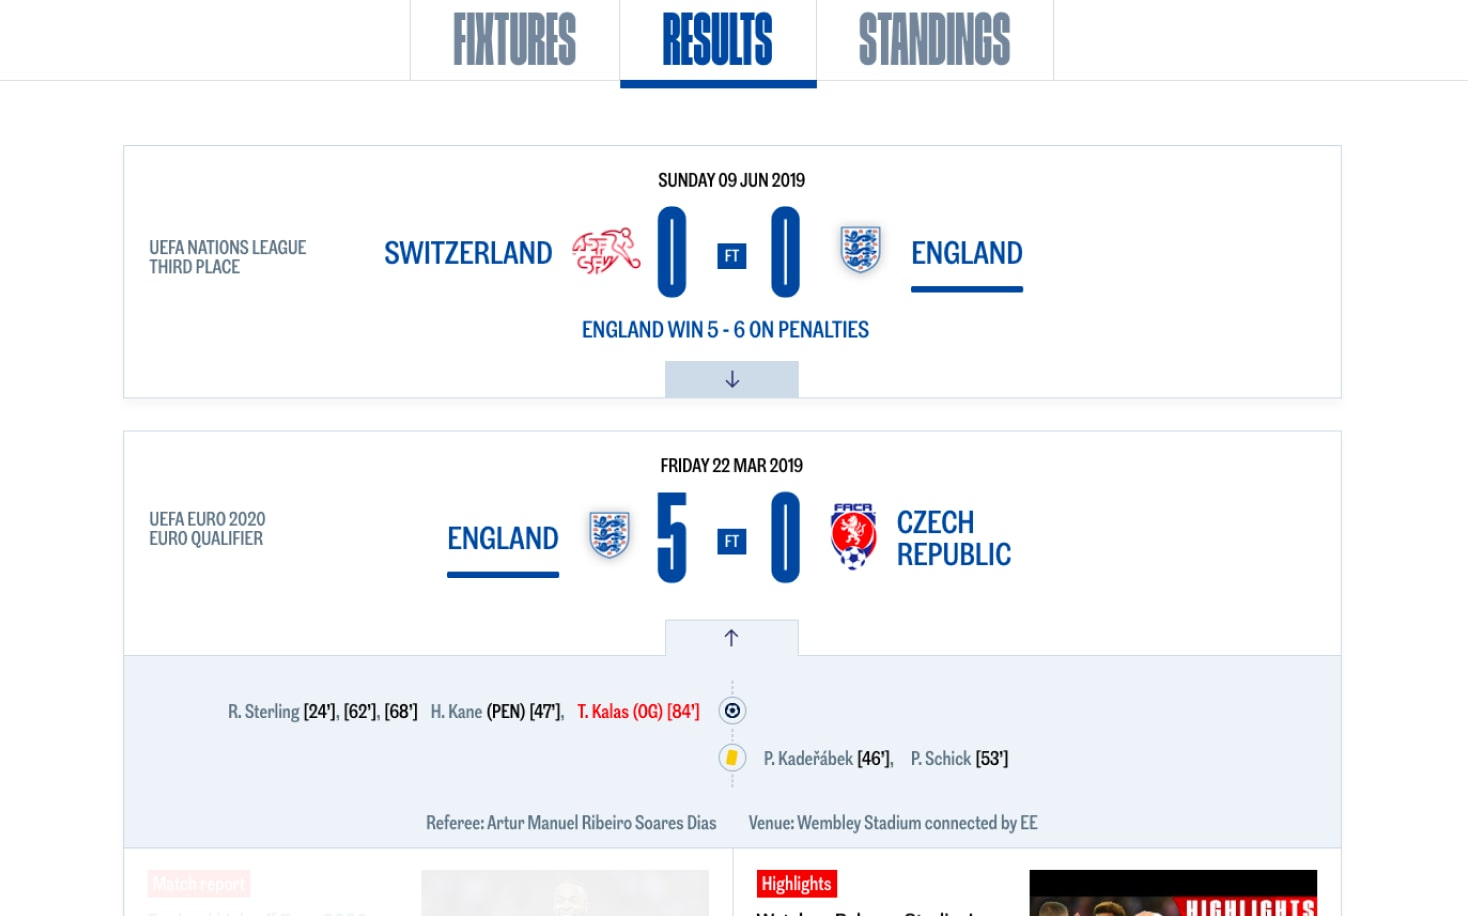 TheFa's results page